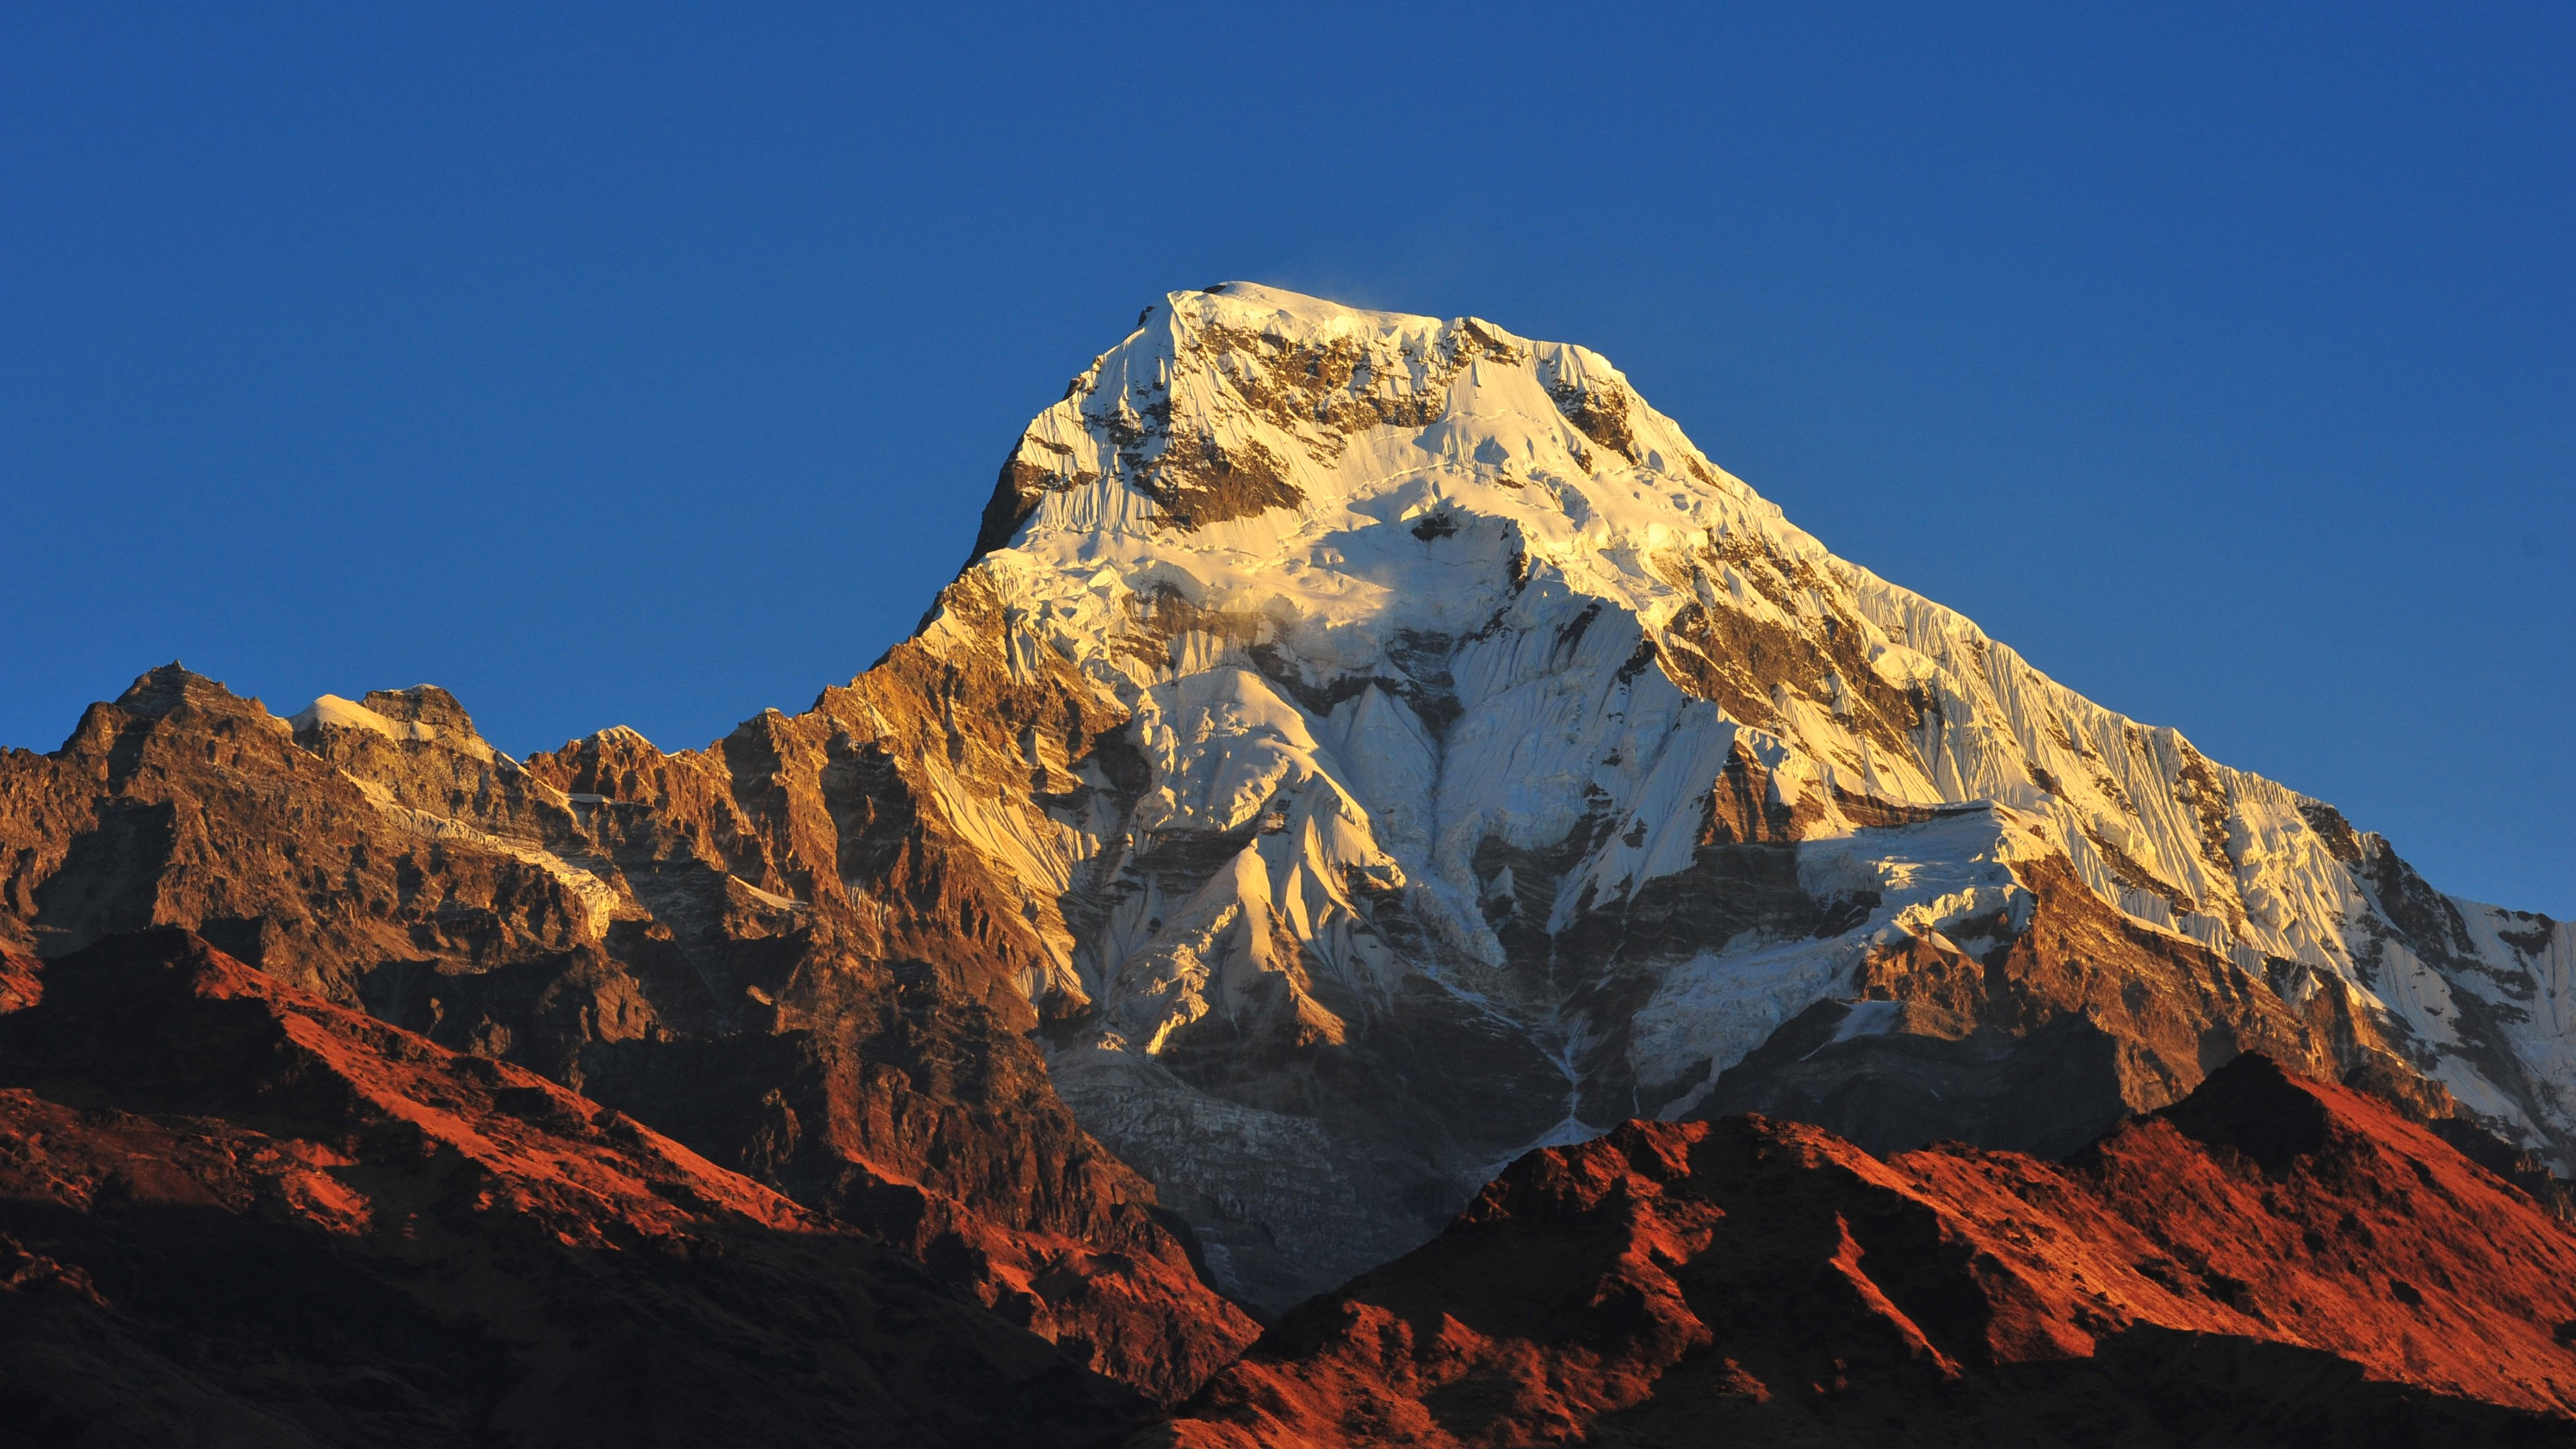 annapurna massif mountain range nepal 4k 1540142874 - Annapurna Massif Mountain Range Nepal 4k - world wallpapers, nepal wallpapers, nature wallpapers, mountains wallpapers, hd-wallpapers, 4k-wallpapers